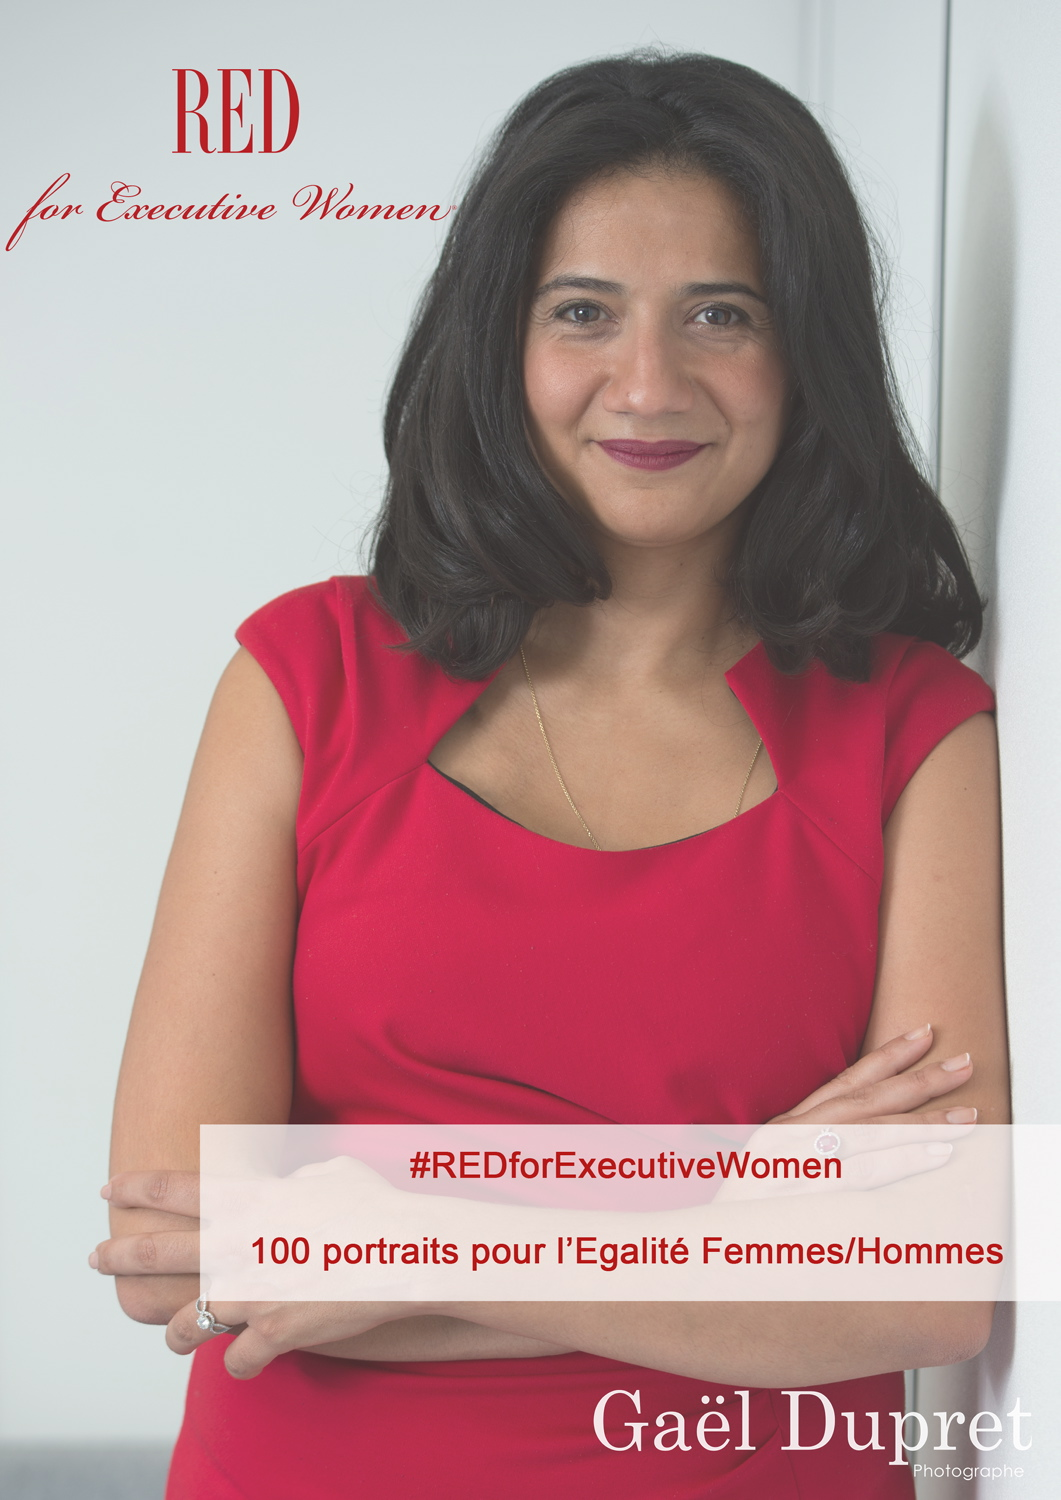 Visual in small format portraits of 100 women who posed in RED for Executive Women